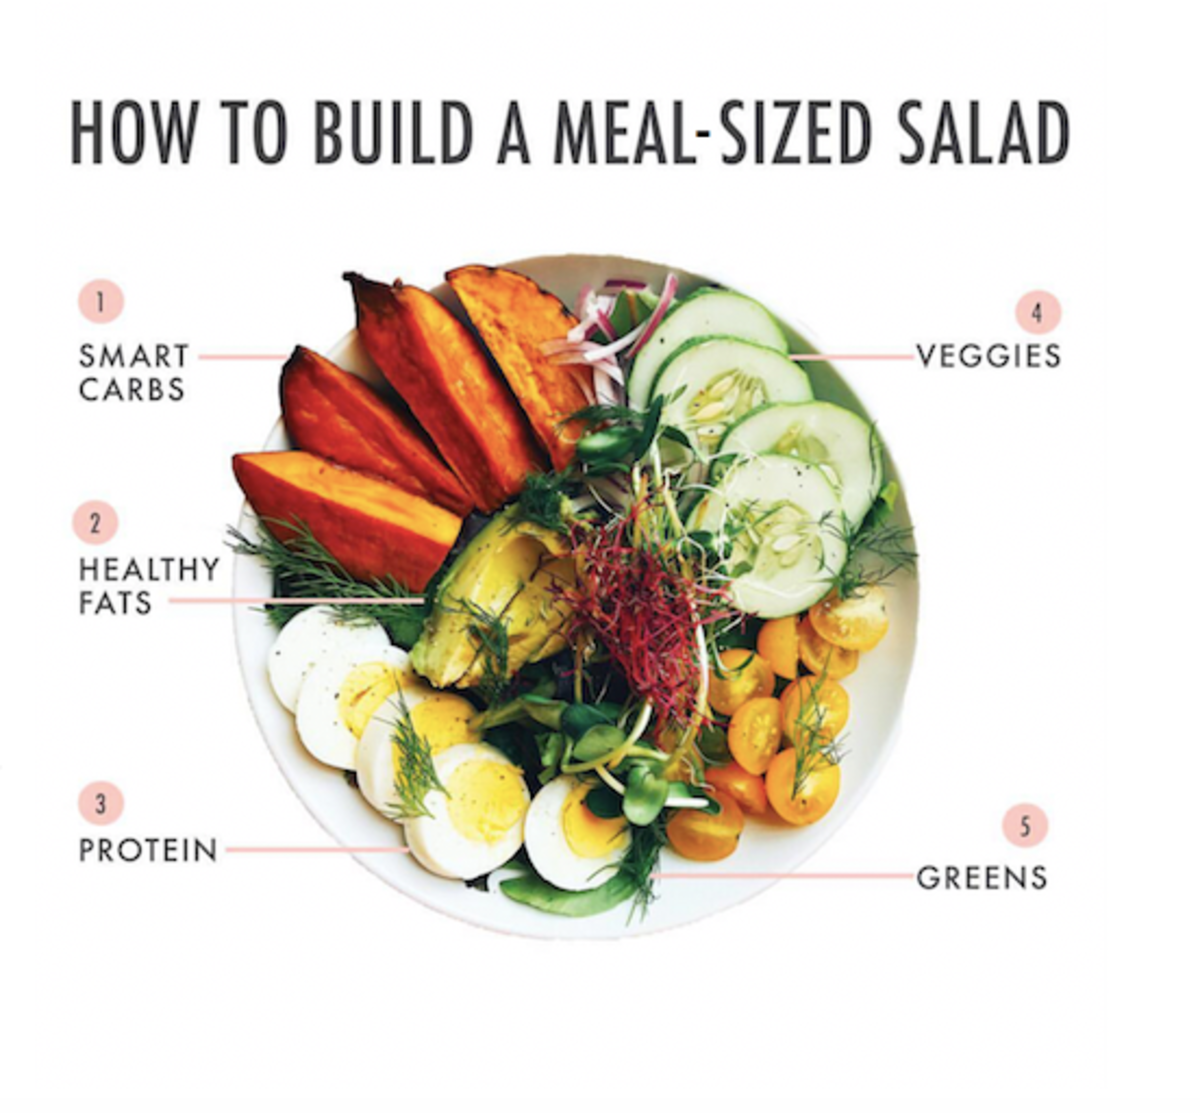 How to Build a Meal-Sized Salad